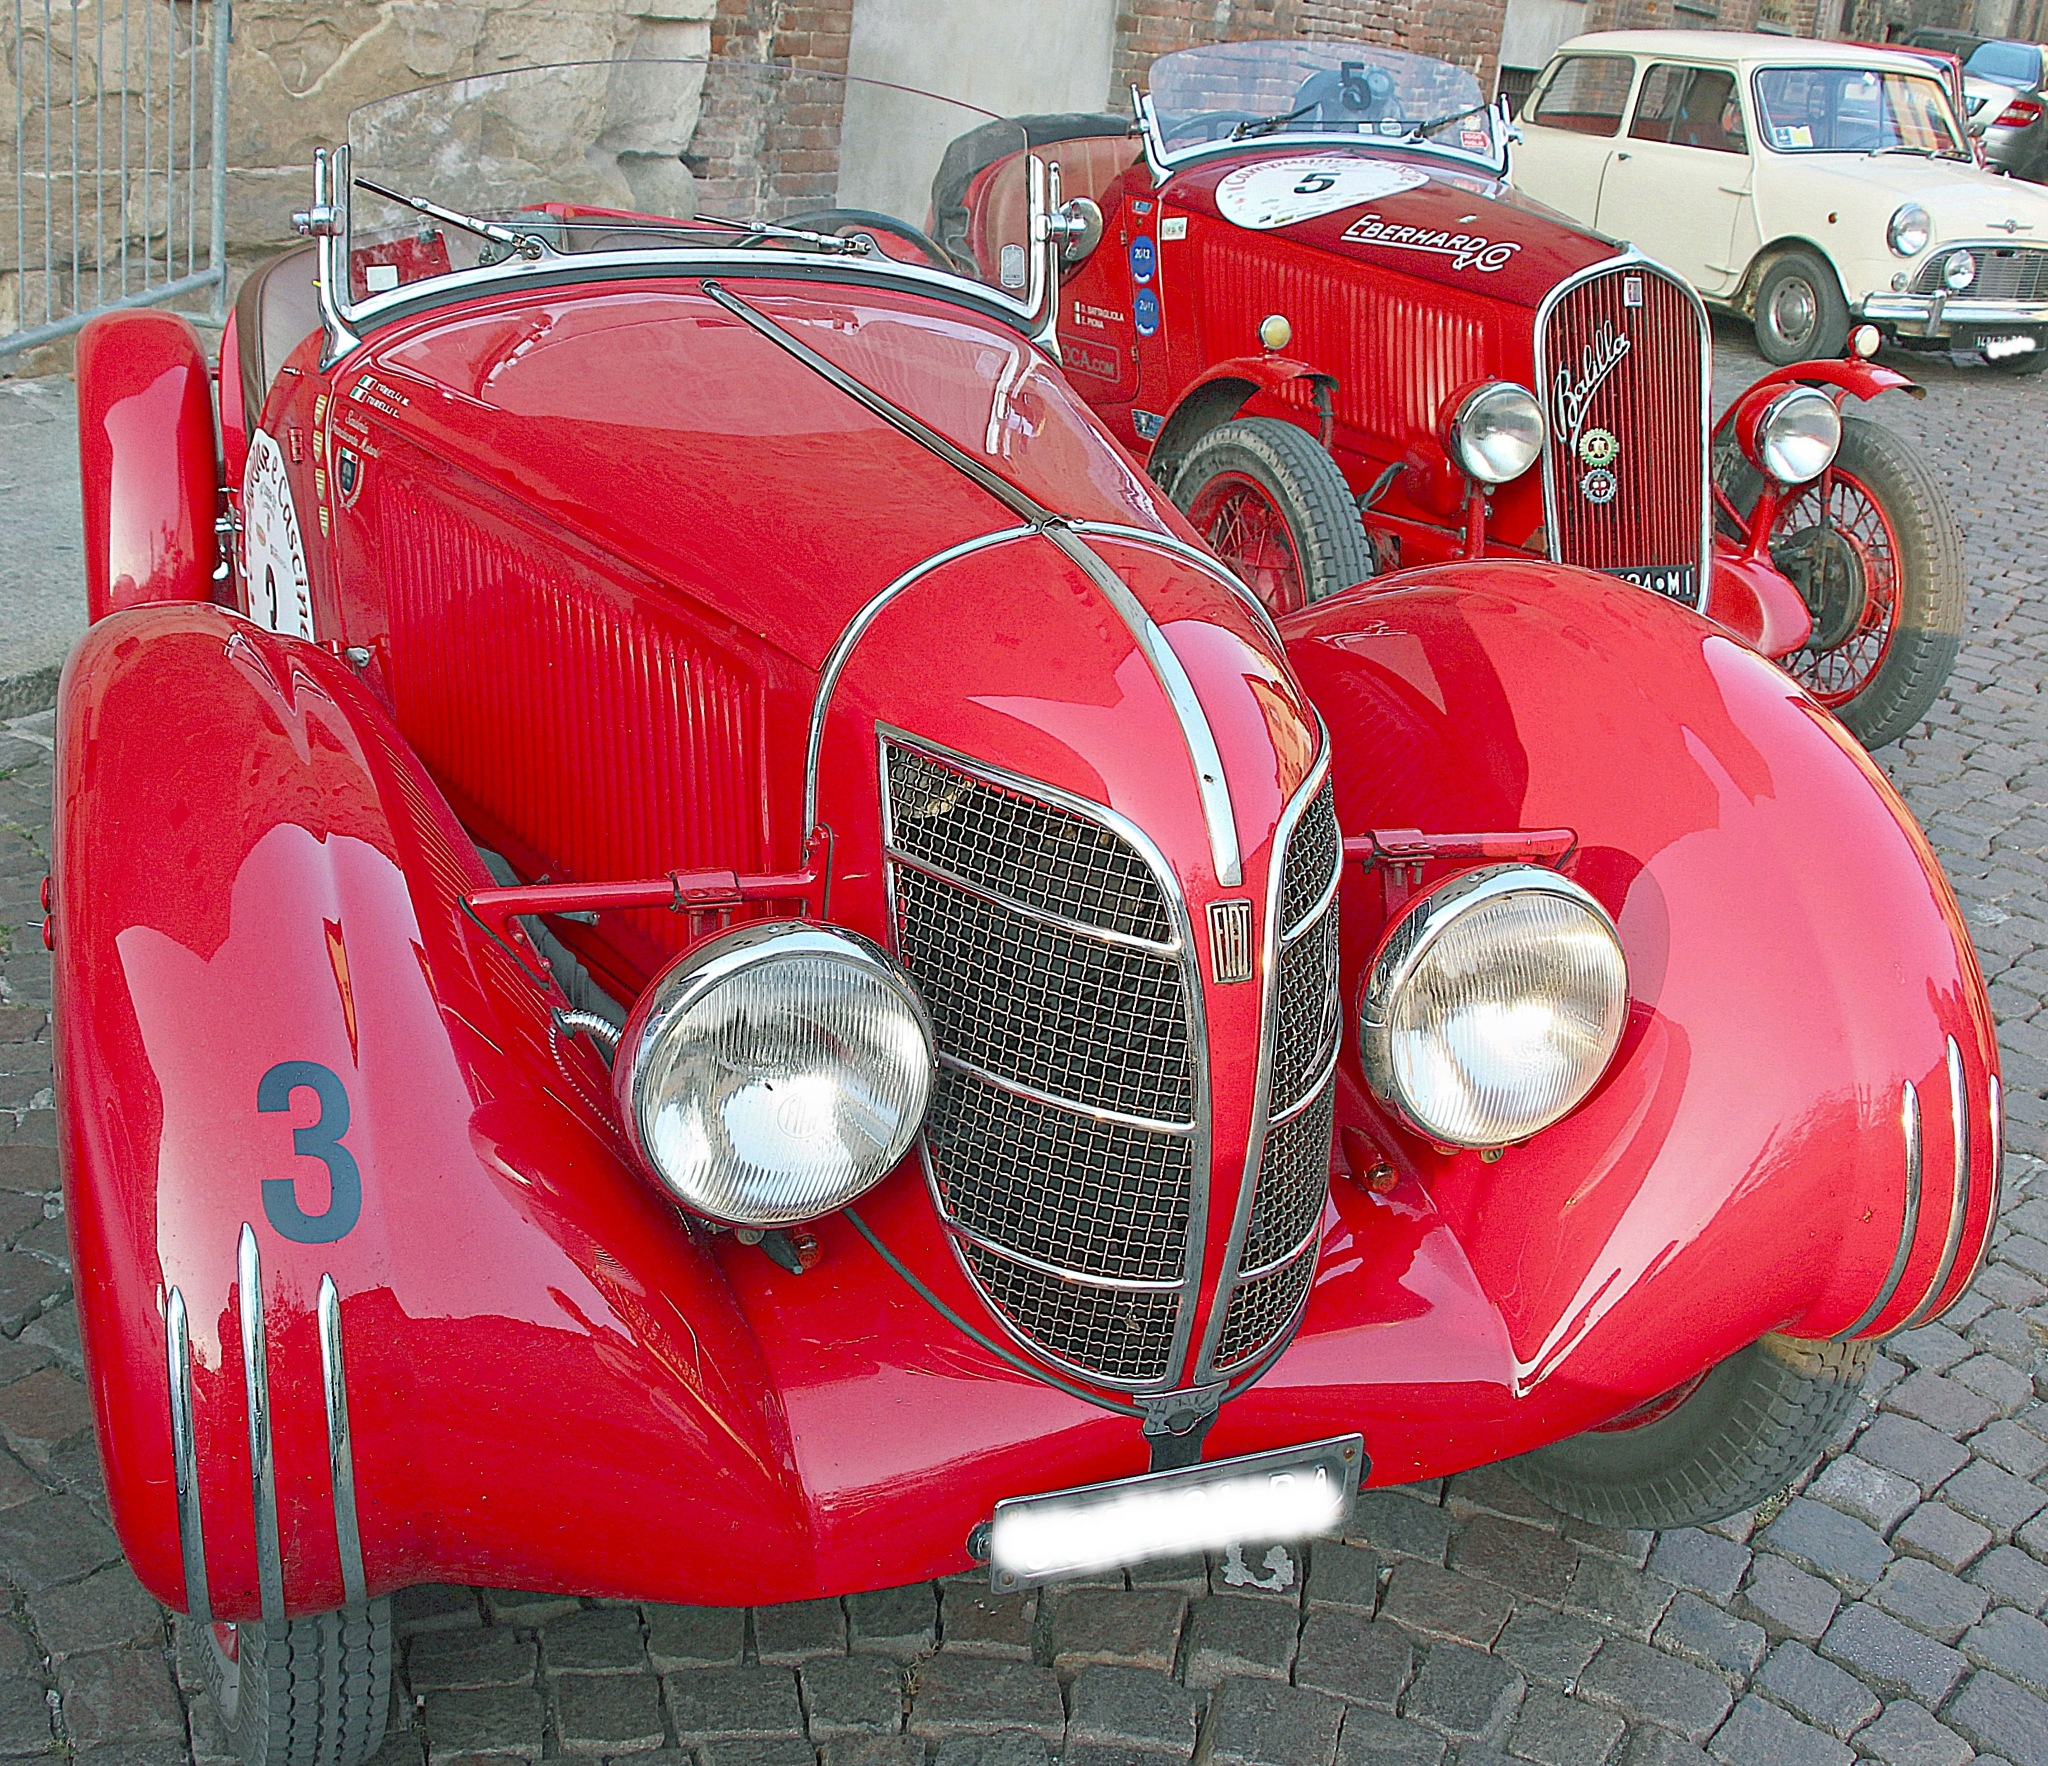 Vintage car trophy in Cremona by Giuseppe Criseo